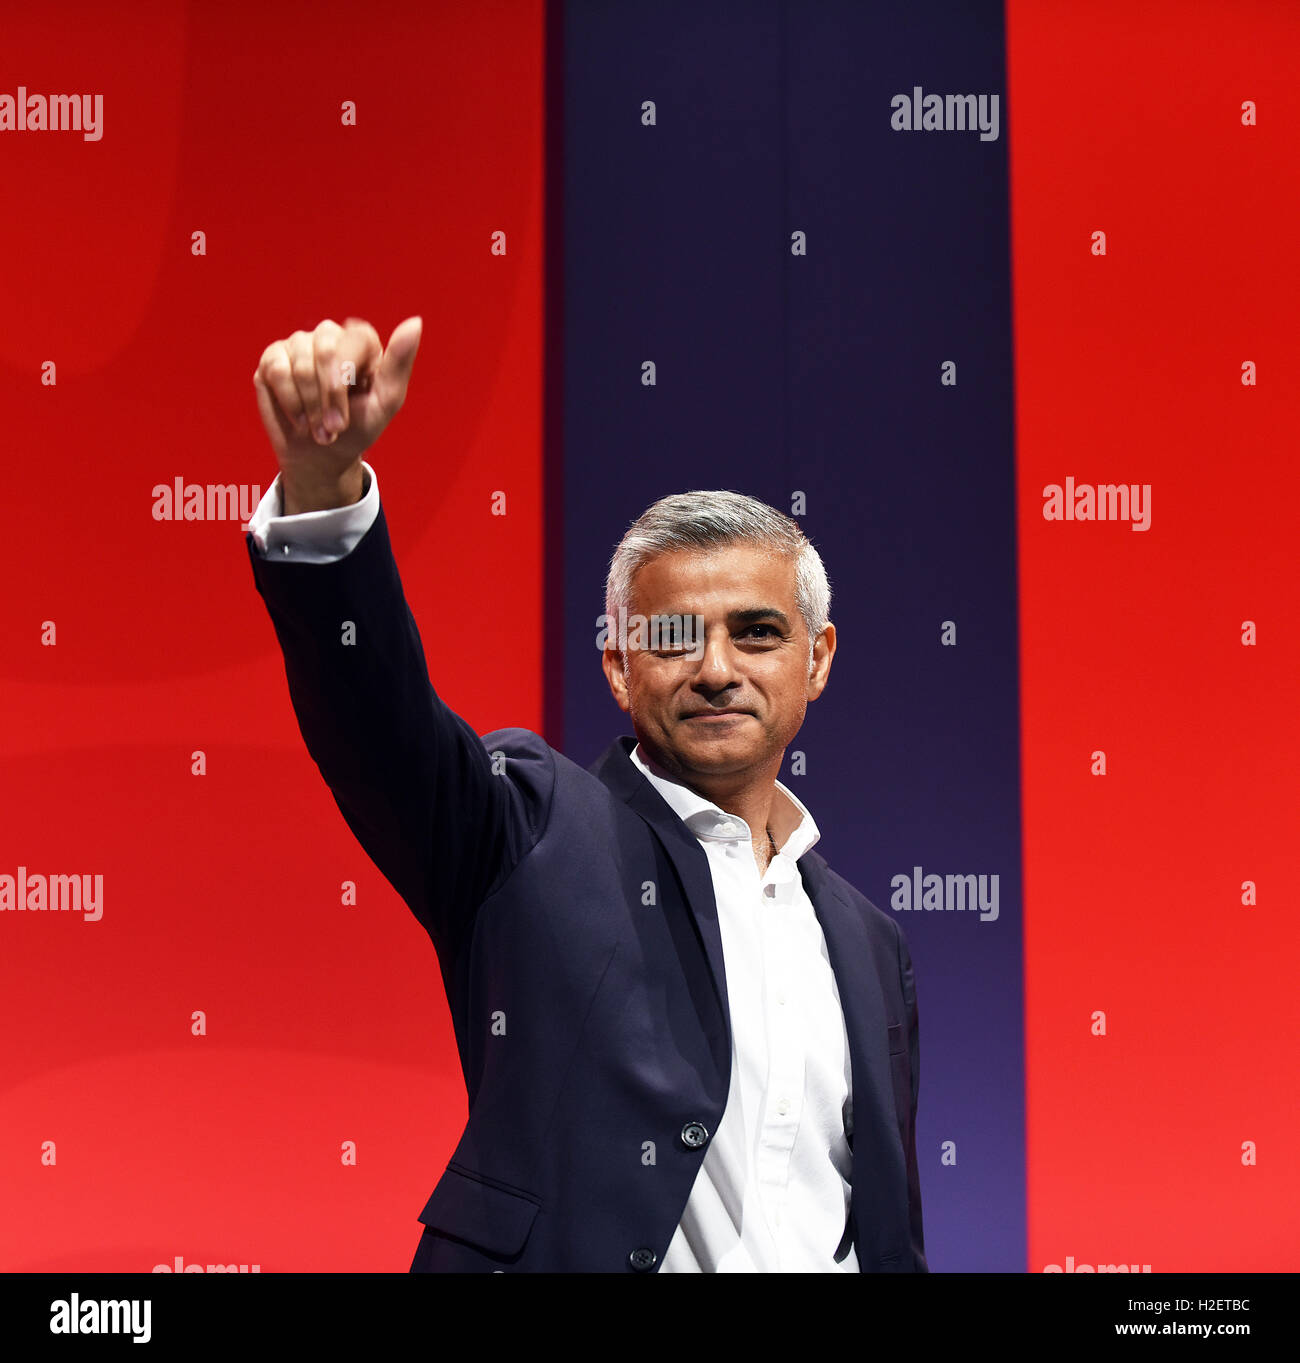 Liverpool, UK. 27th September, 2016. Sadiq Khan Mayor of London addresses the Labour Party Delegation at their conference - Stock Image